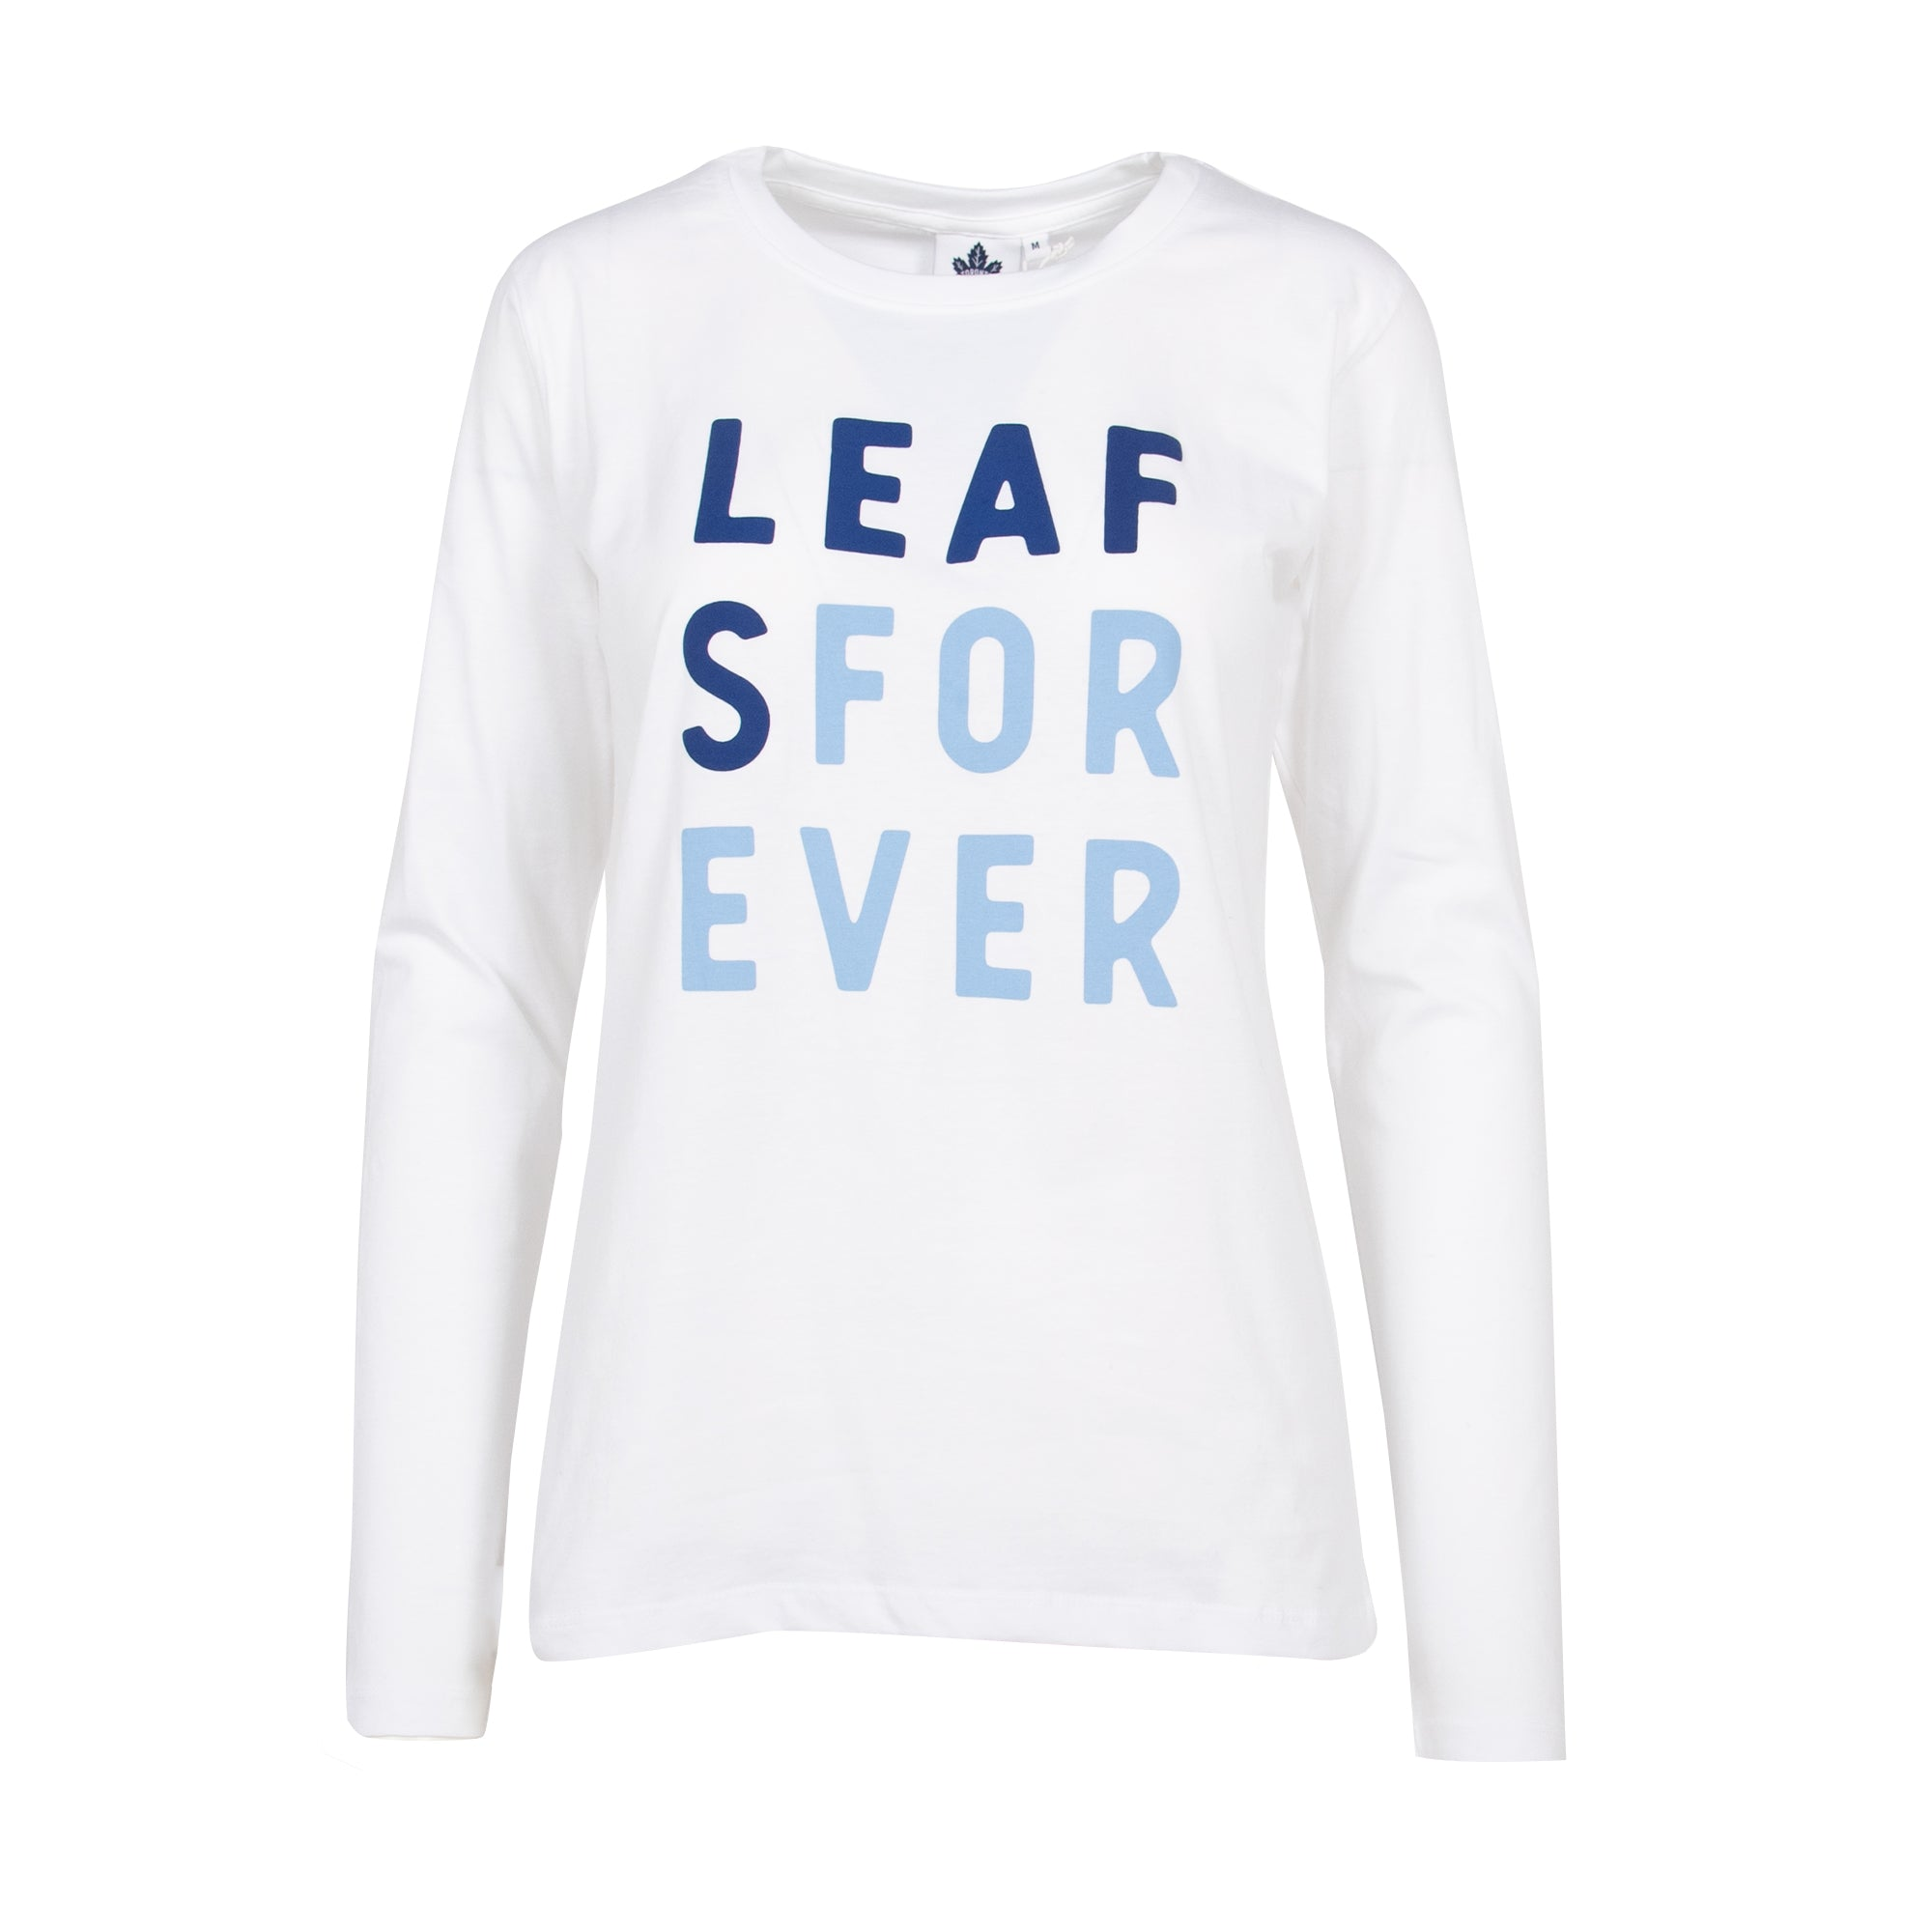 Maple Leafs Ladies Leafs Forever Long Sleeve Tee